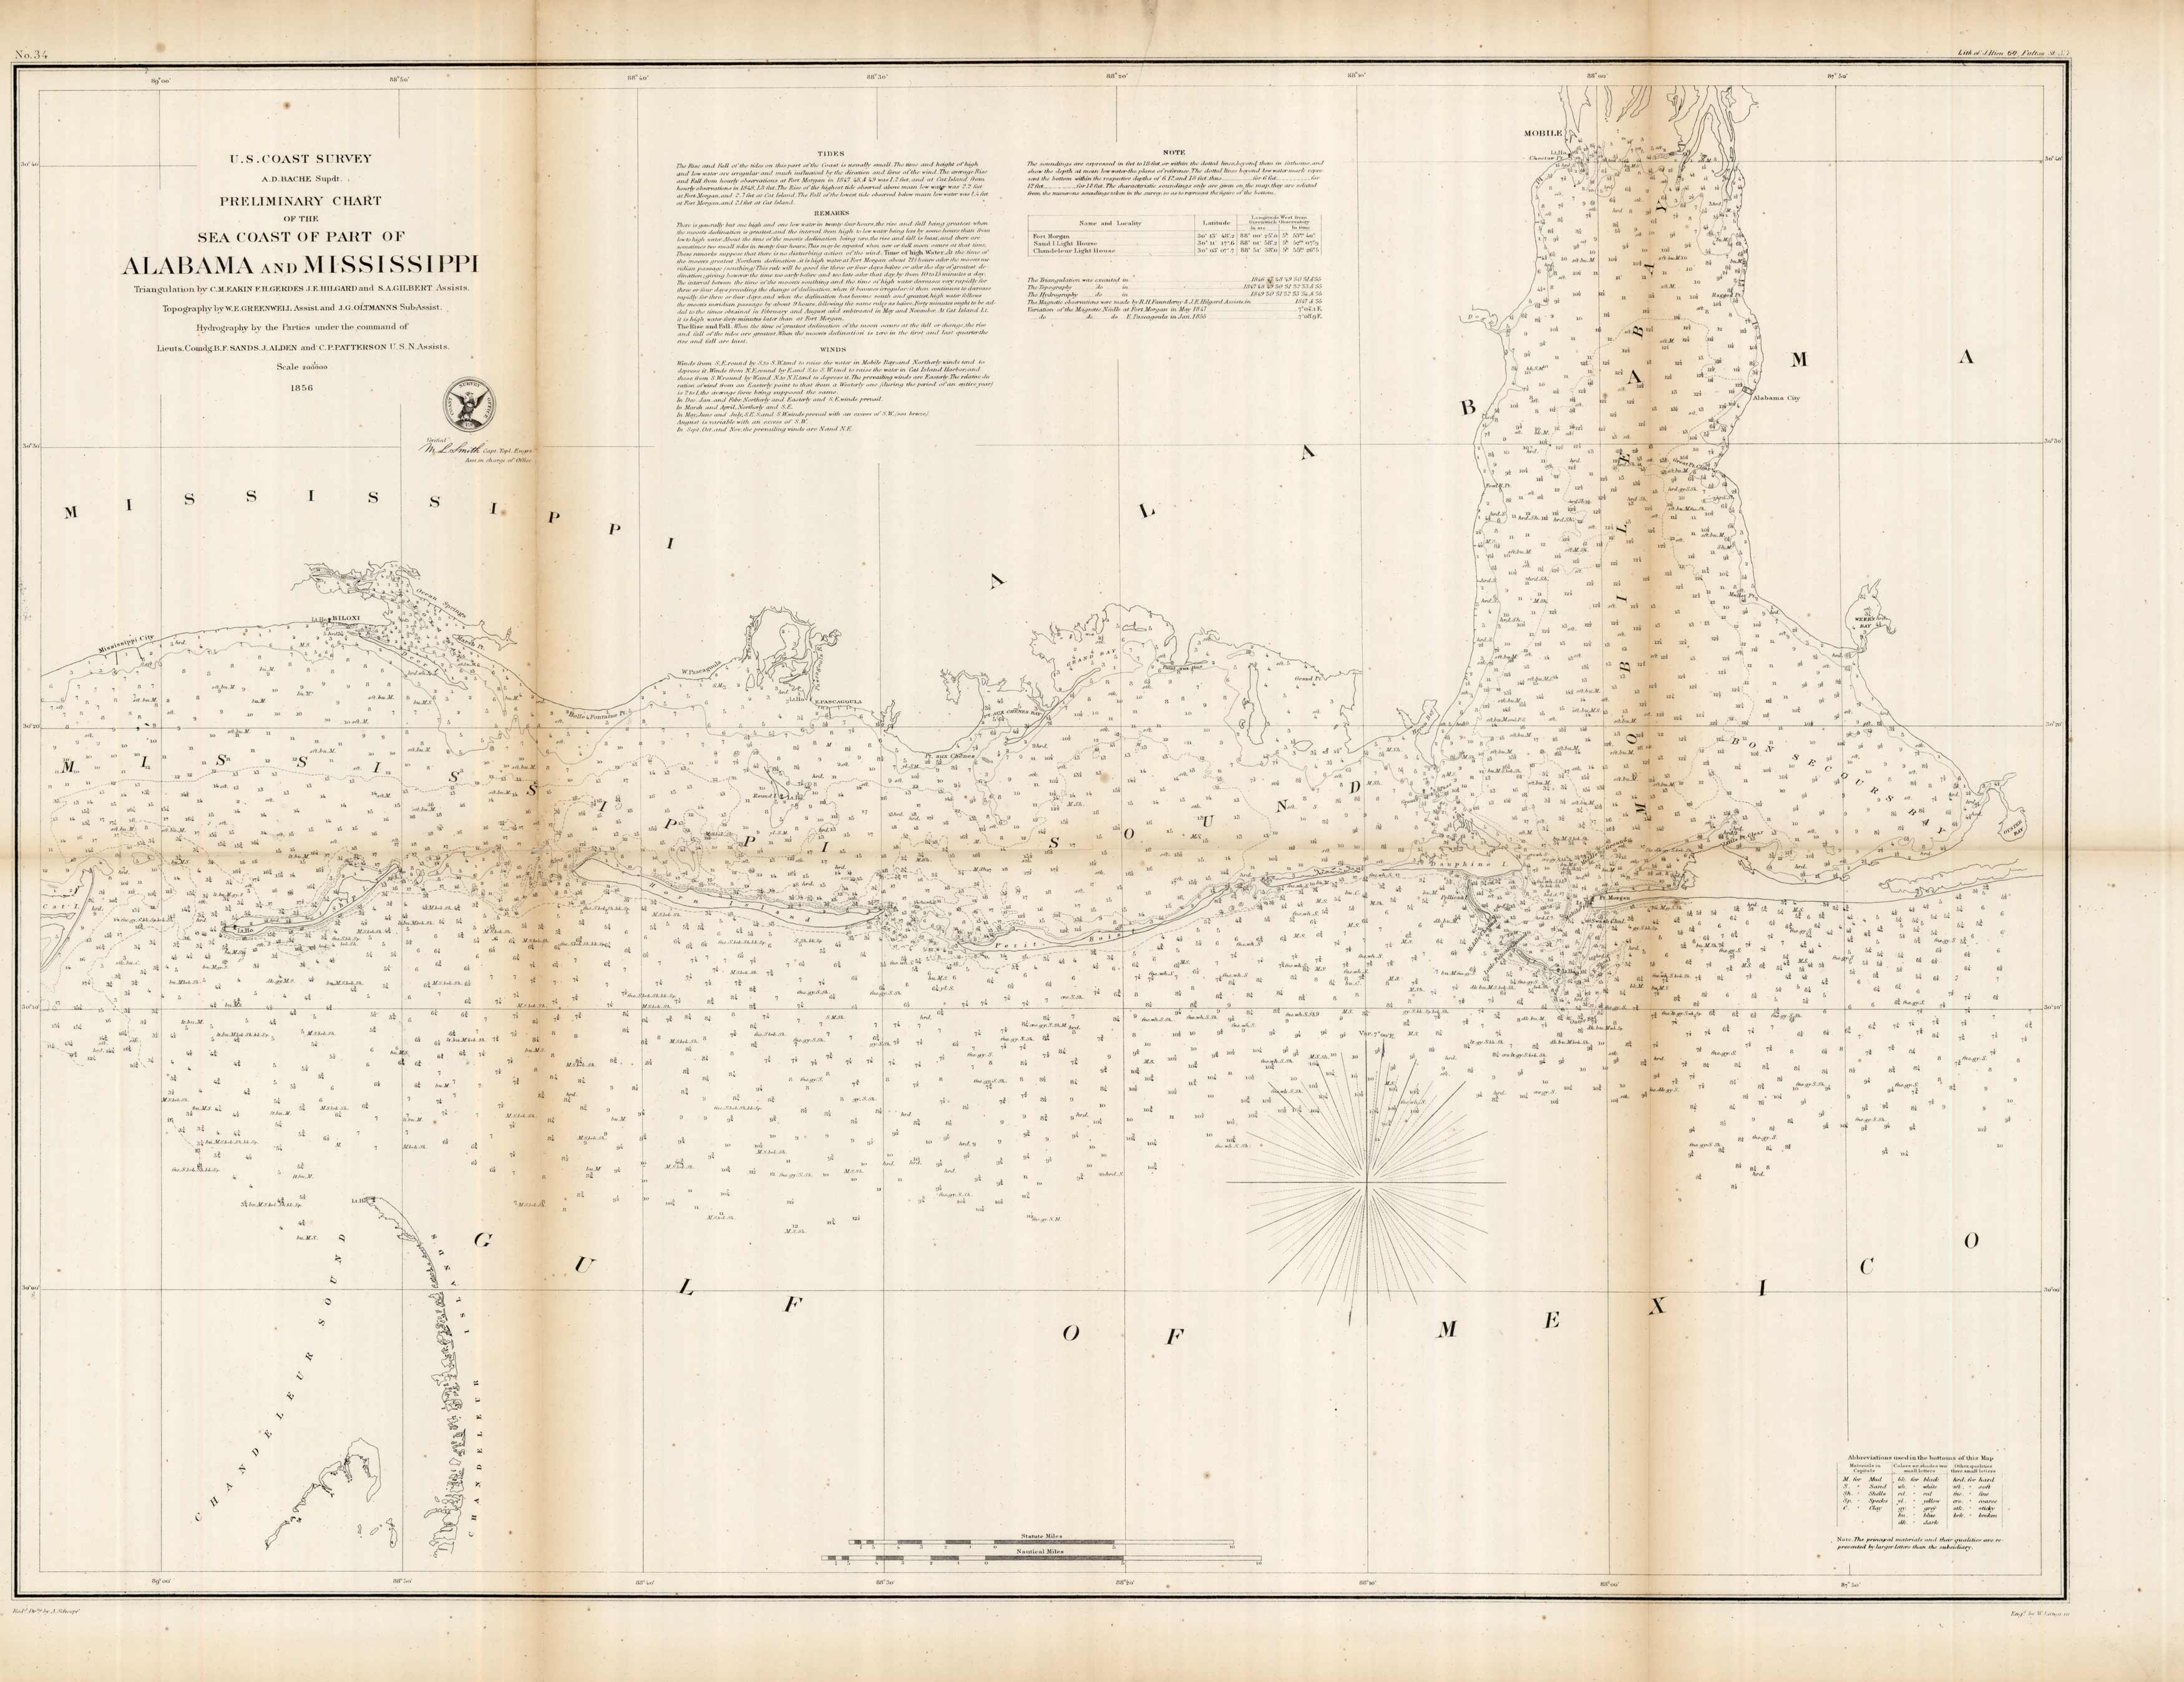 Preliminary Chart of the Sea Coast of part of Alabama and Mississippi